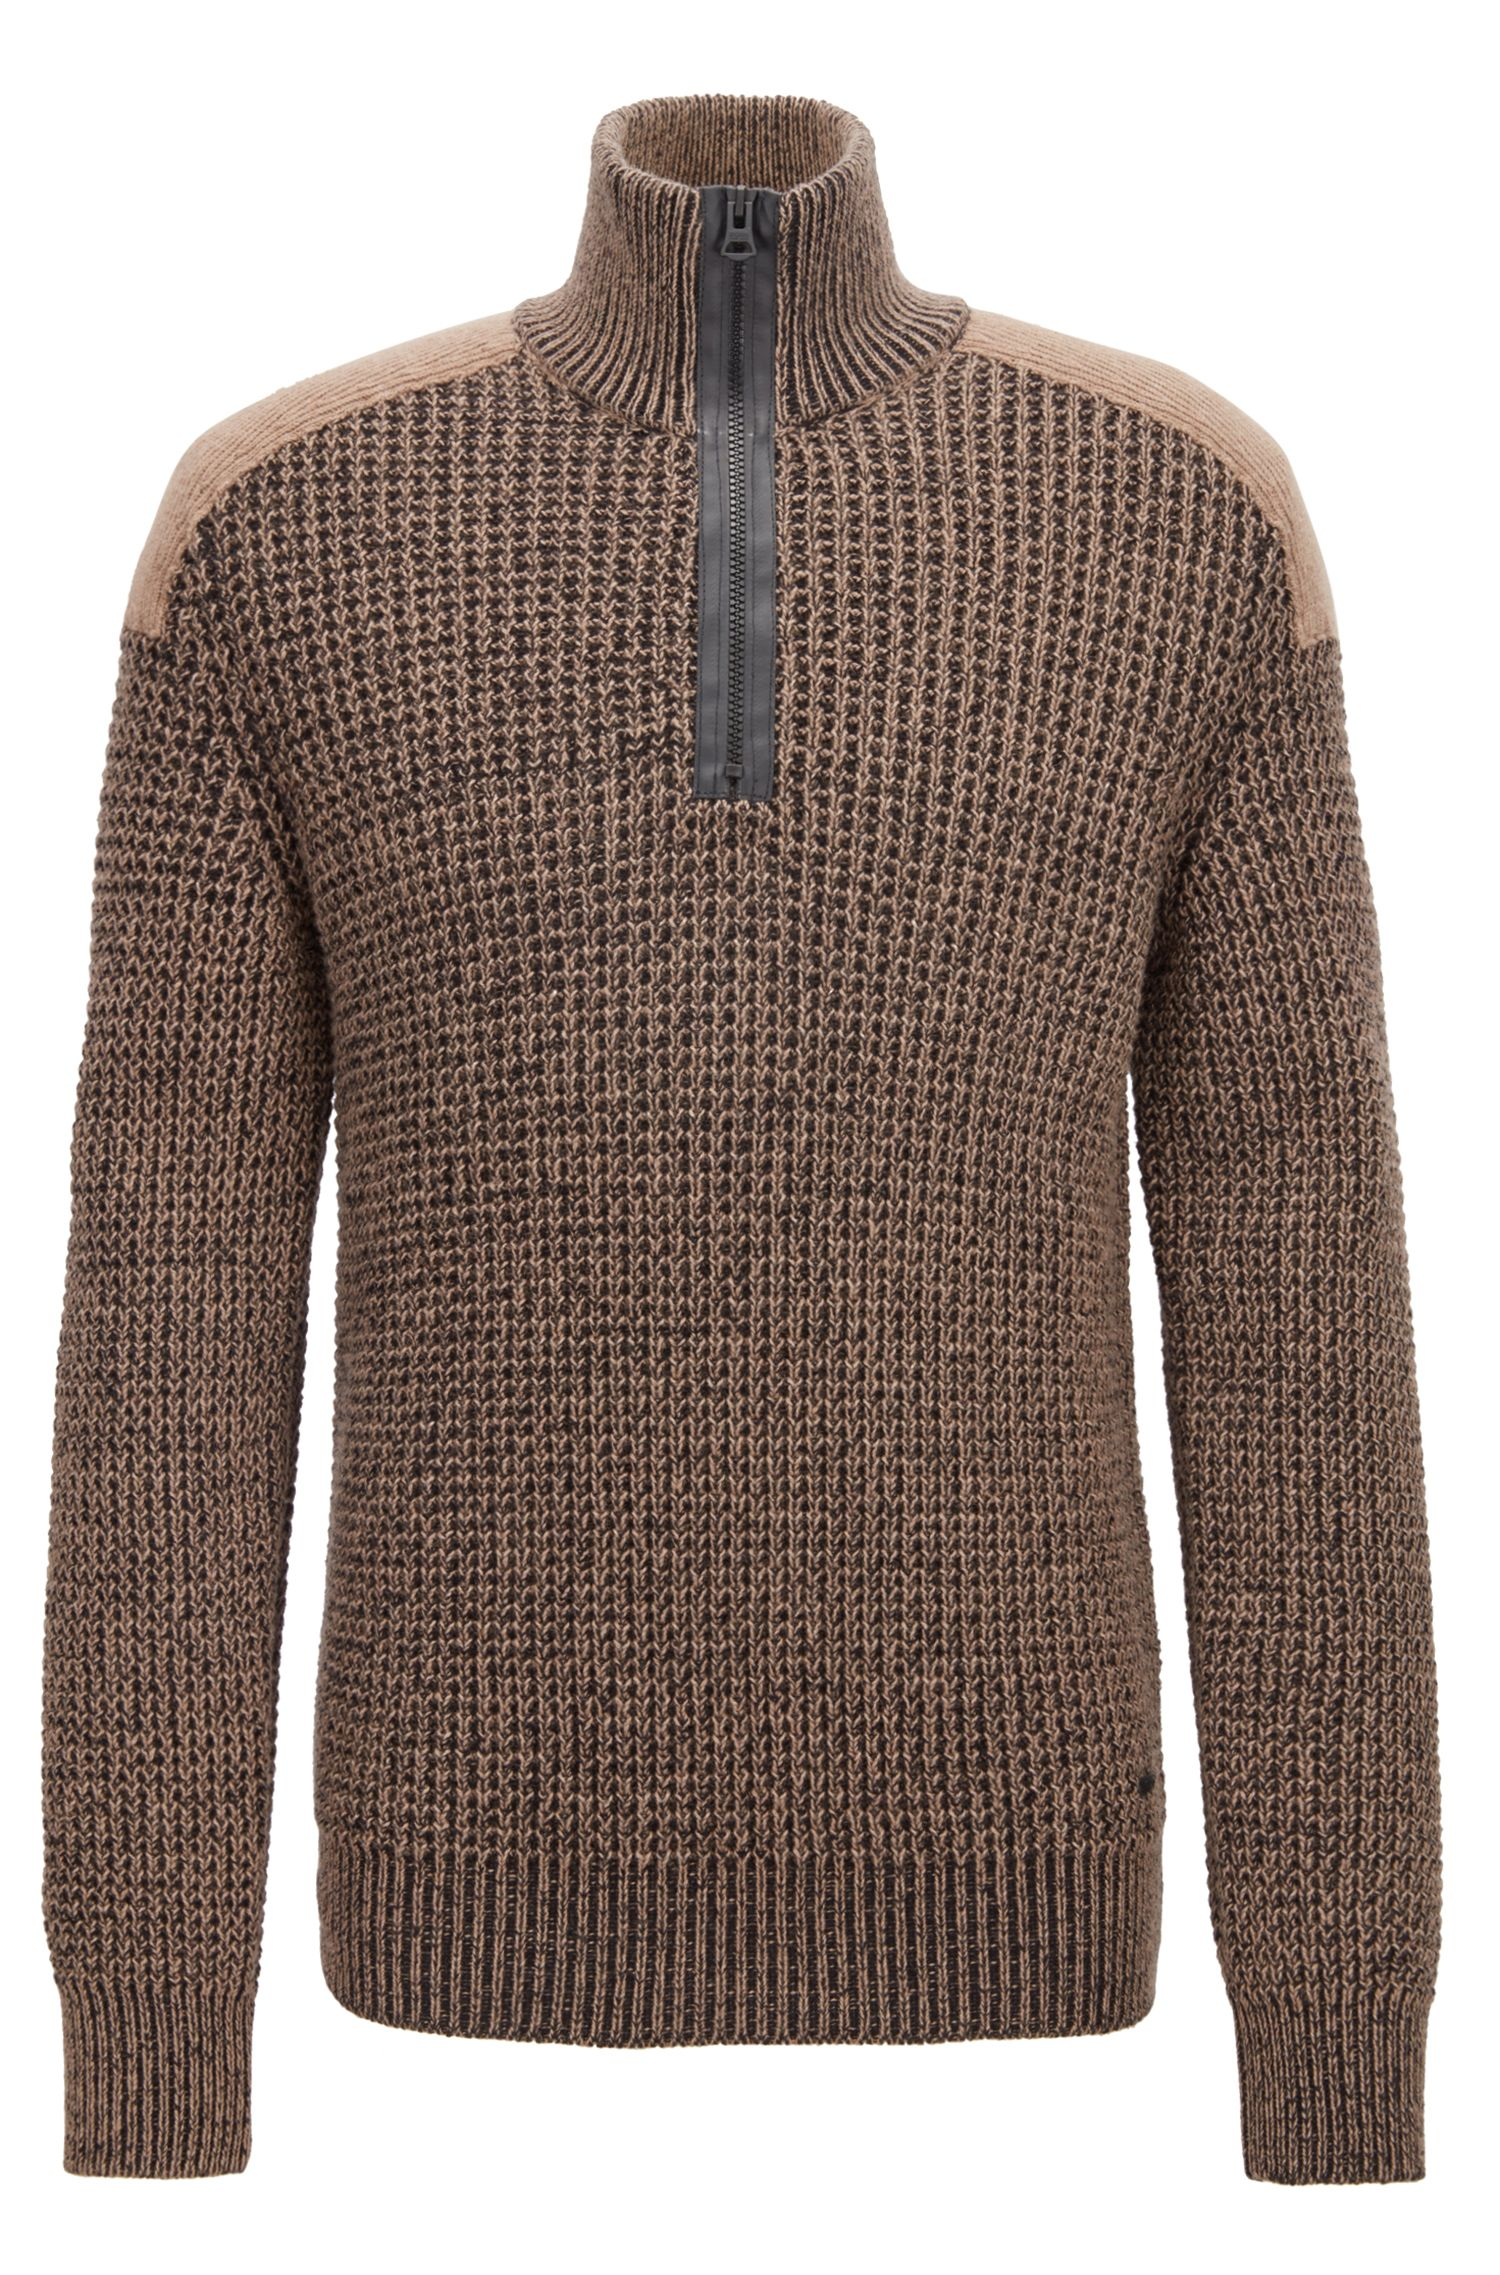 Knitted zip-neck sweater with contrast shoulder patch, Brown